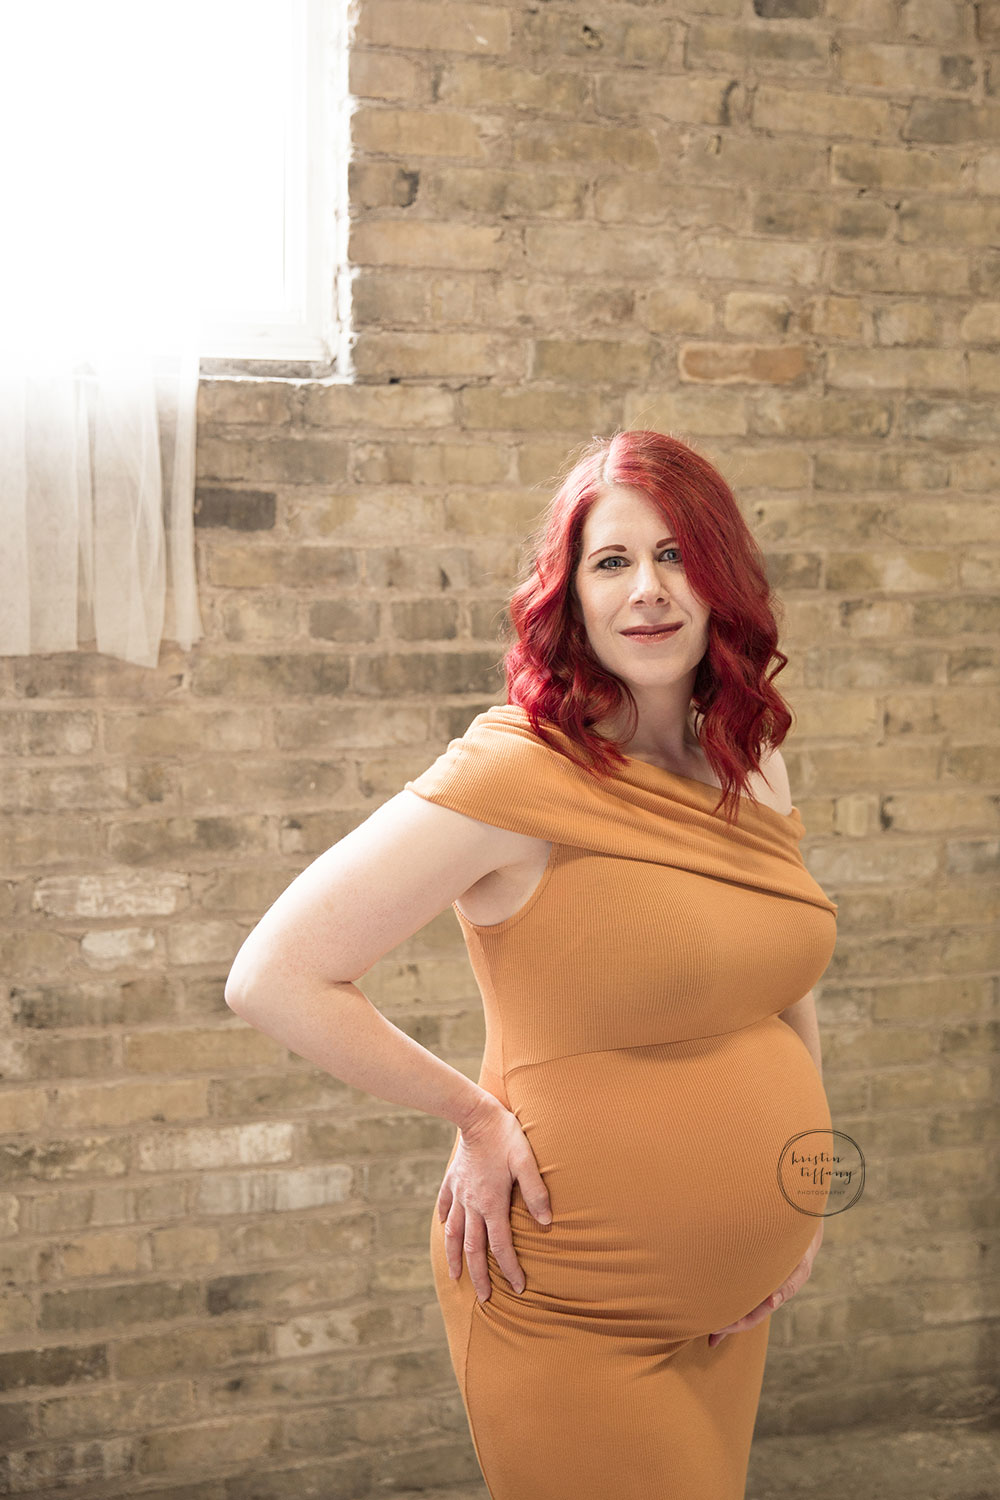 a maternity photo of a woman in a yellow dress with red hair